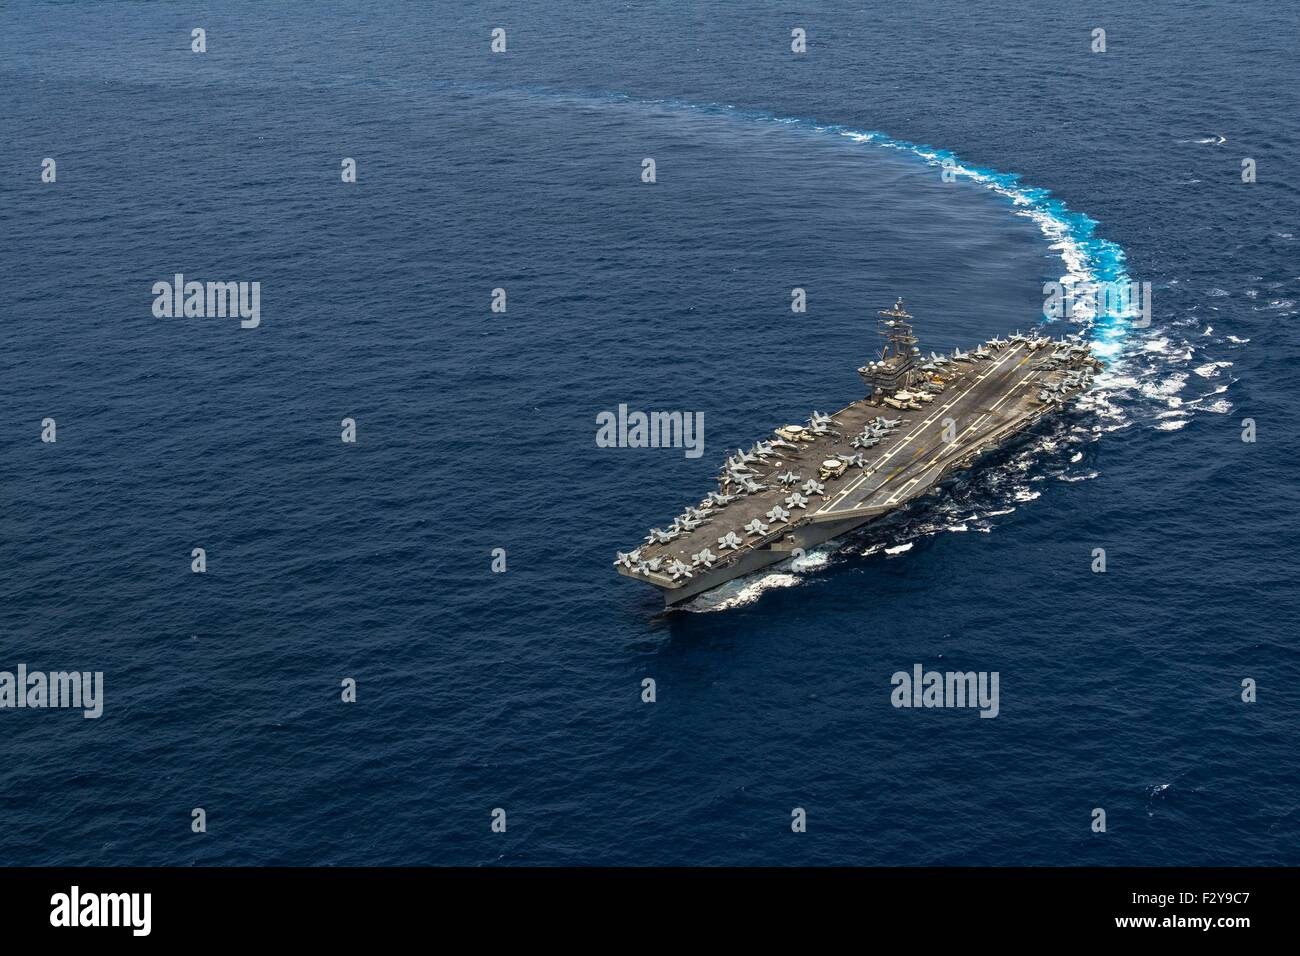 US Navy Nimitz-class nuclear aircraft carrier USS Ronald Reagan underway September 19, 2015 in the Pacific Ocean. - Stock Image